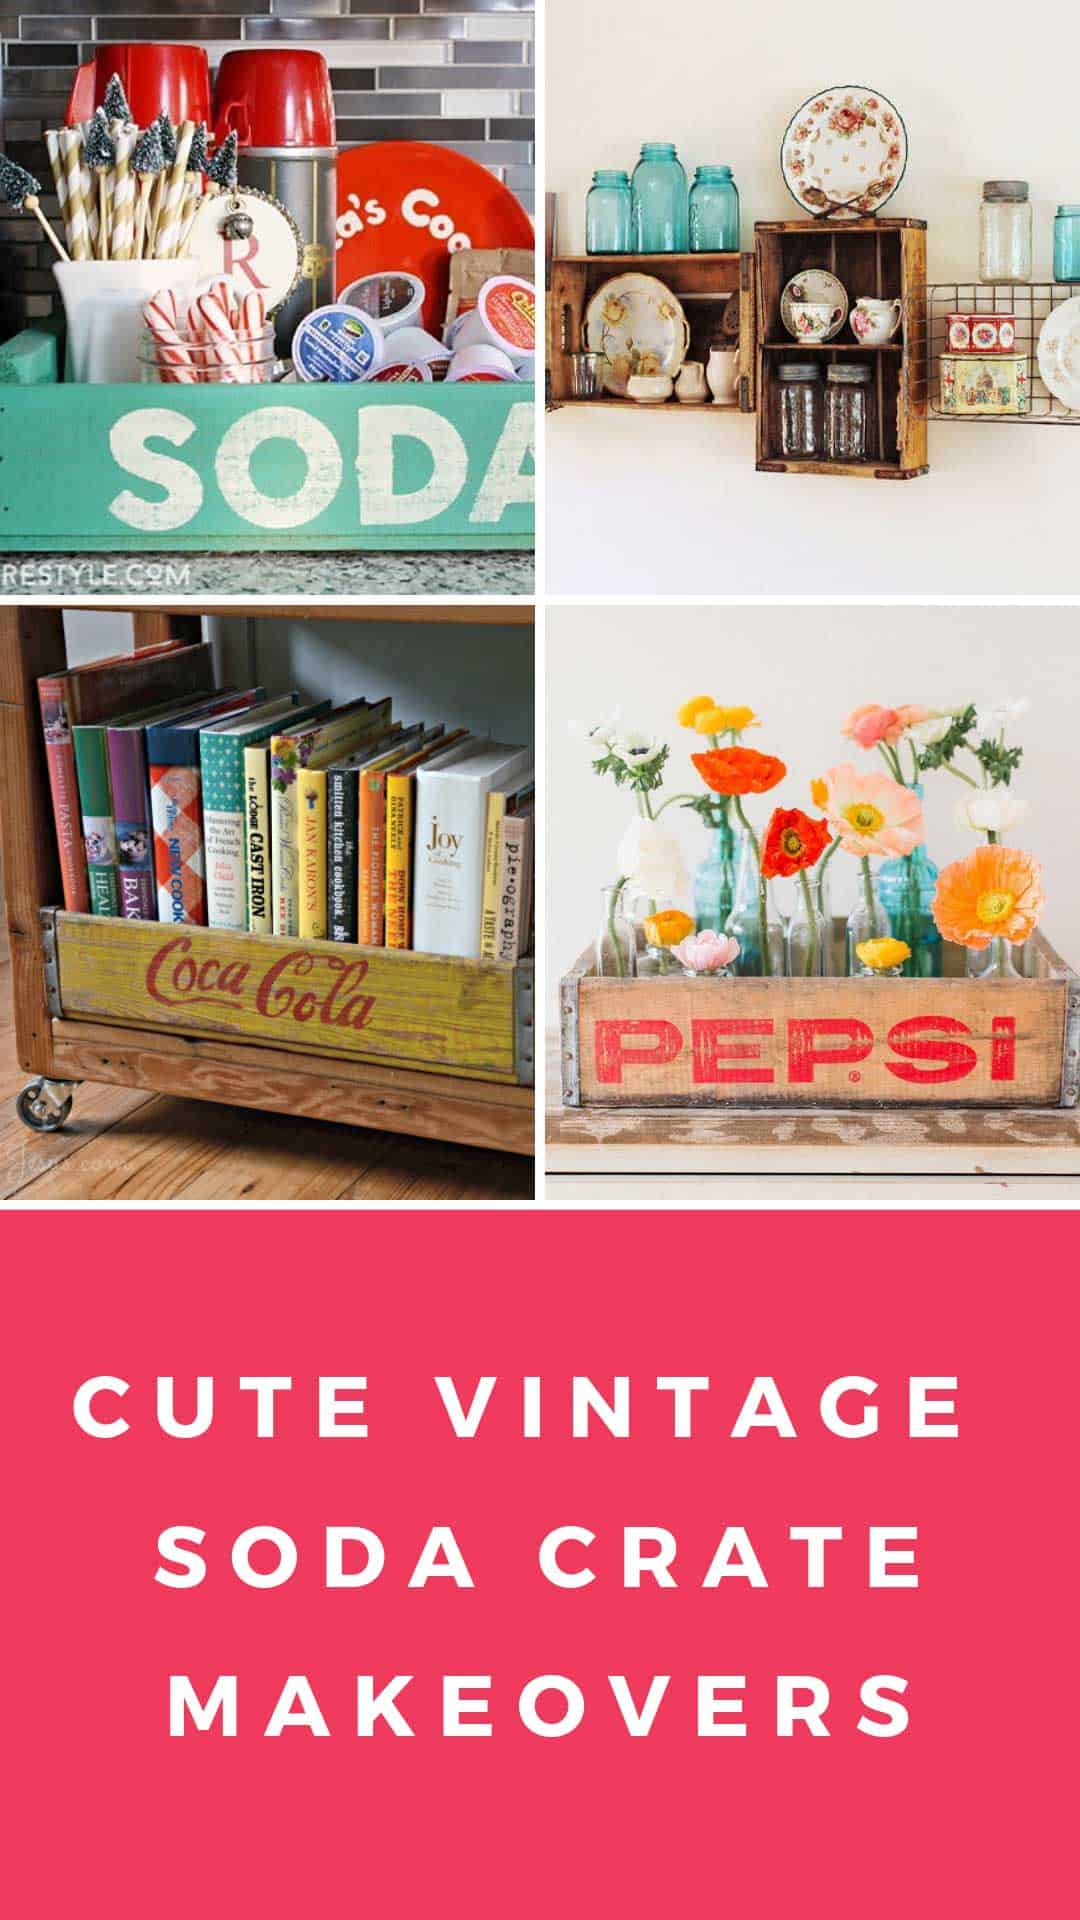 These repurposed coke crate ideas are beyond genius! I LOVE the idea of using a soda crate as a table centerpiece, and for storing essential oils too!